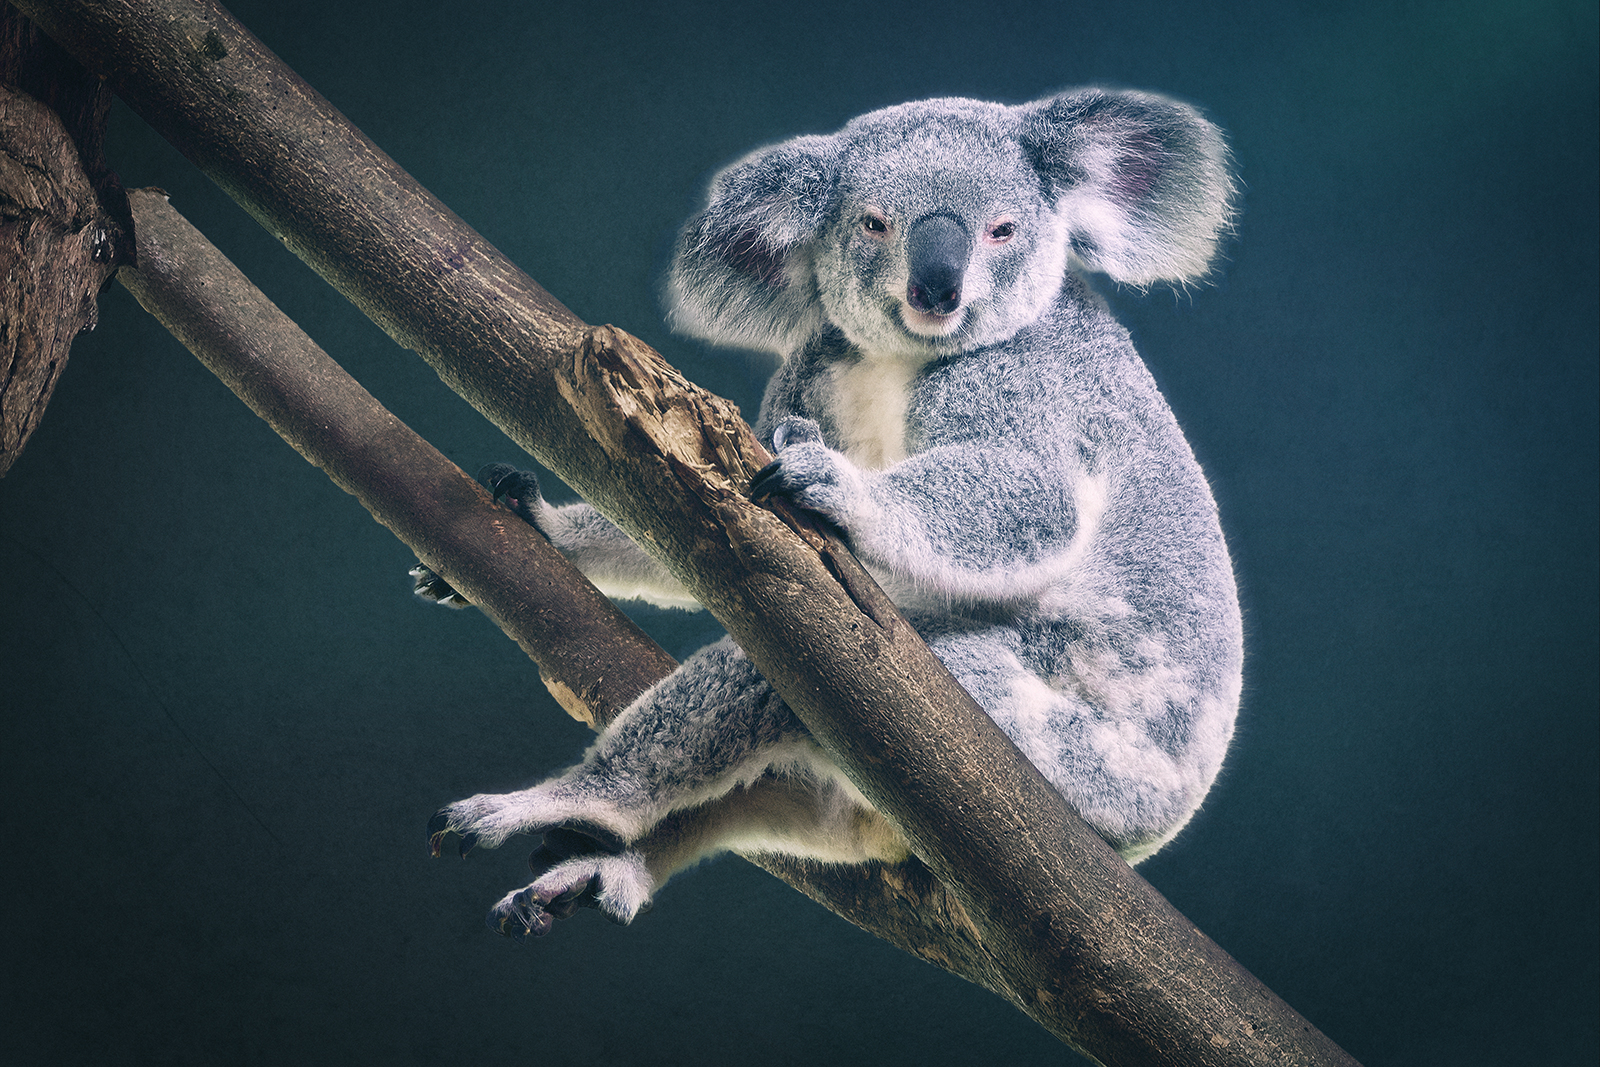 Portrait of a Koala